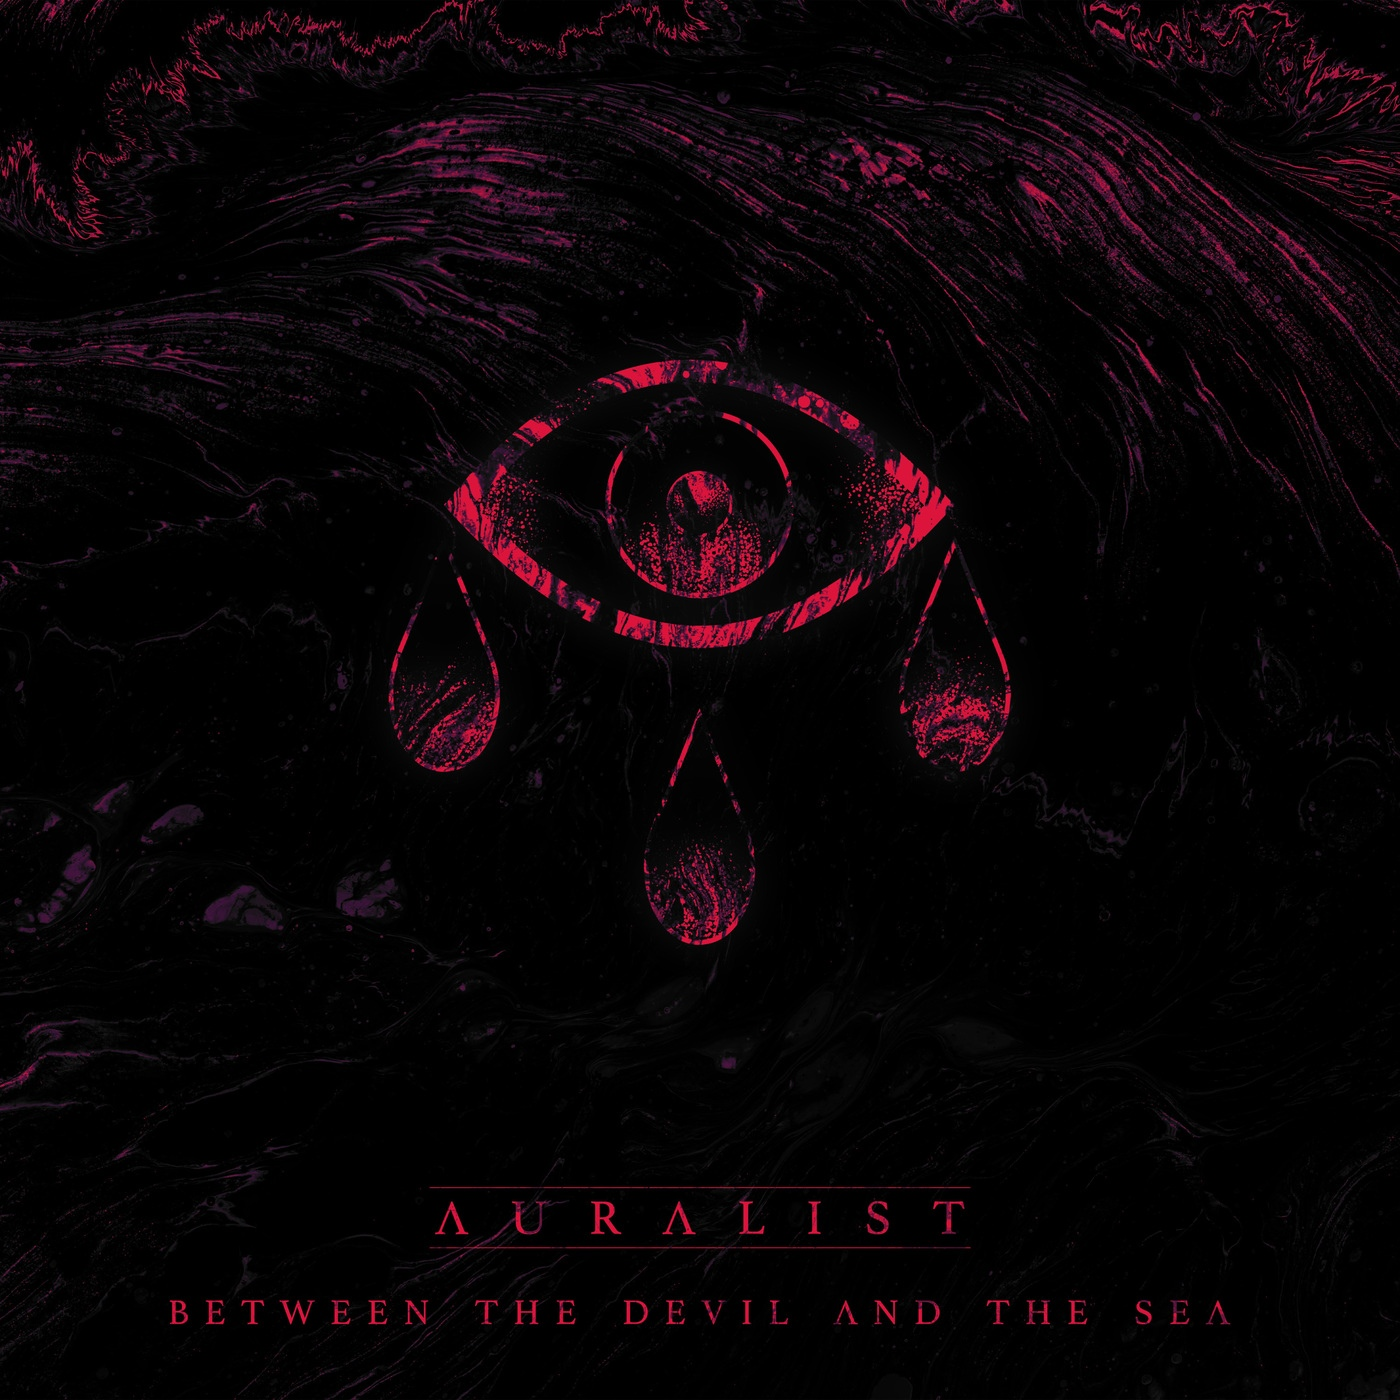 Auralist - Between the Devil and the Sea (2019)